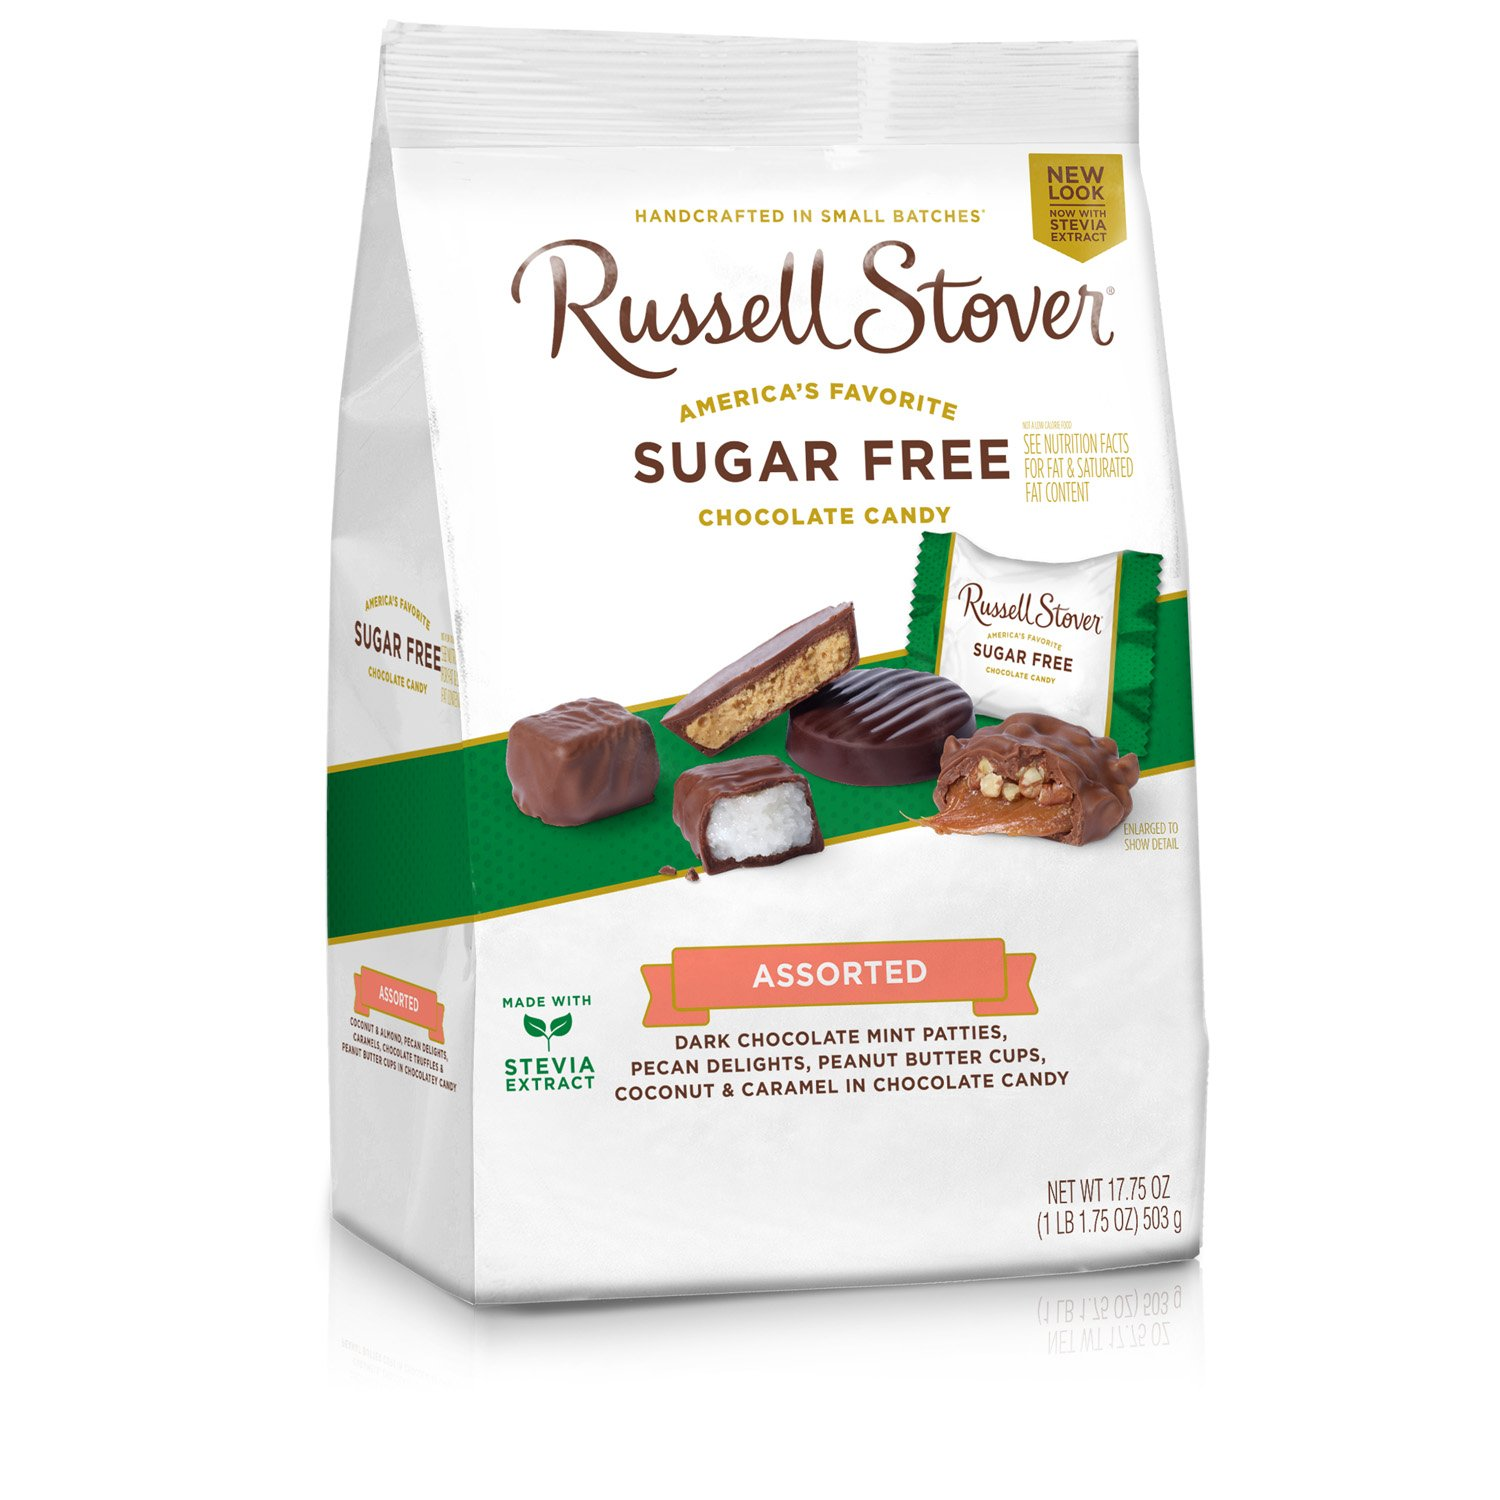 Russell Stover Sugar Free Assorted Chocolates Gusset Bag